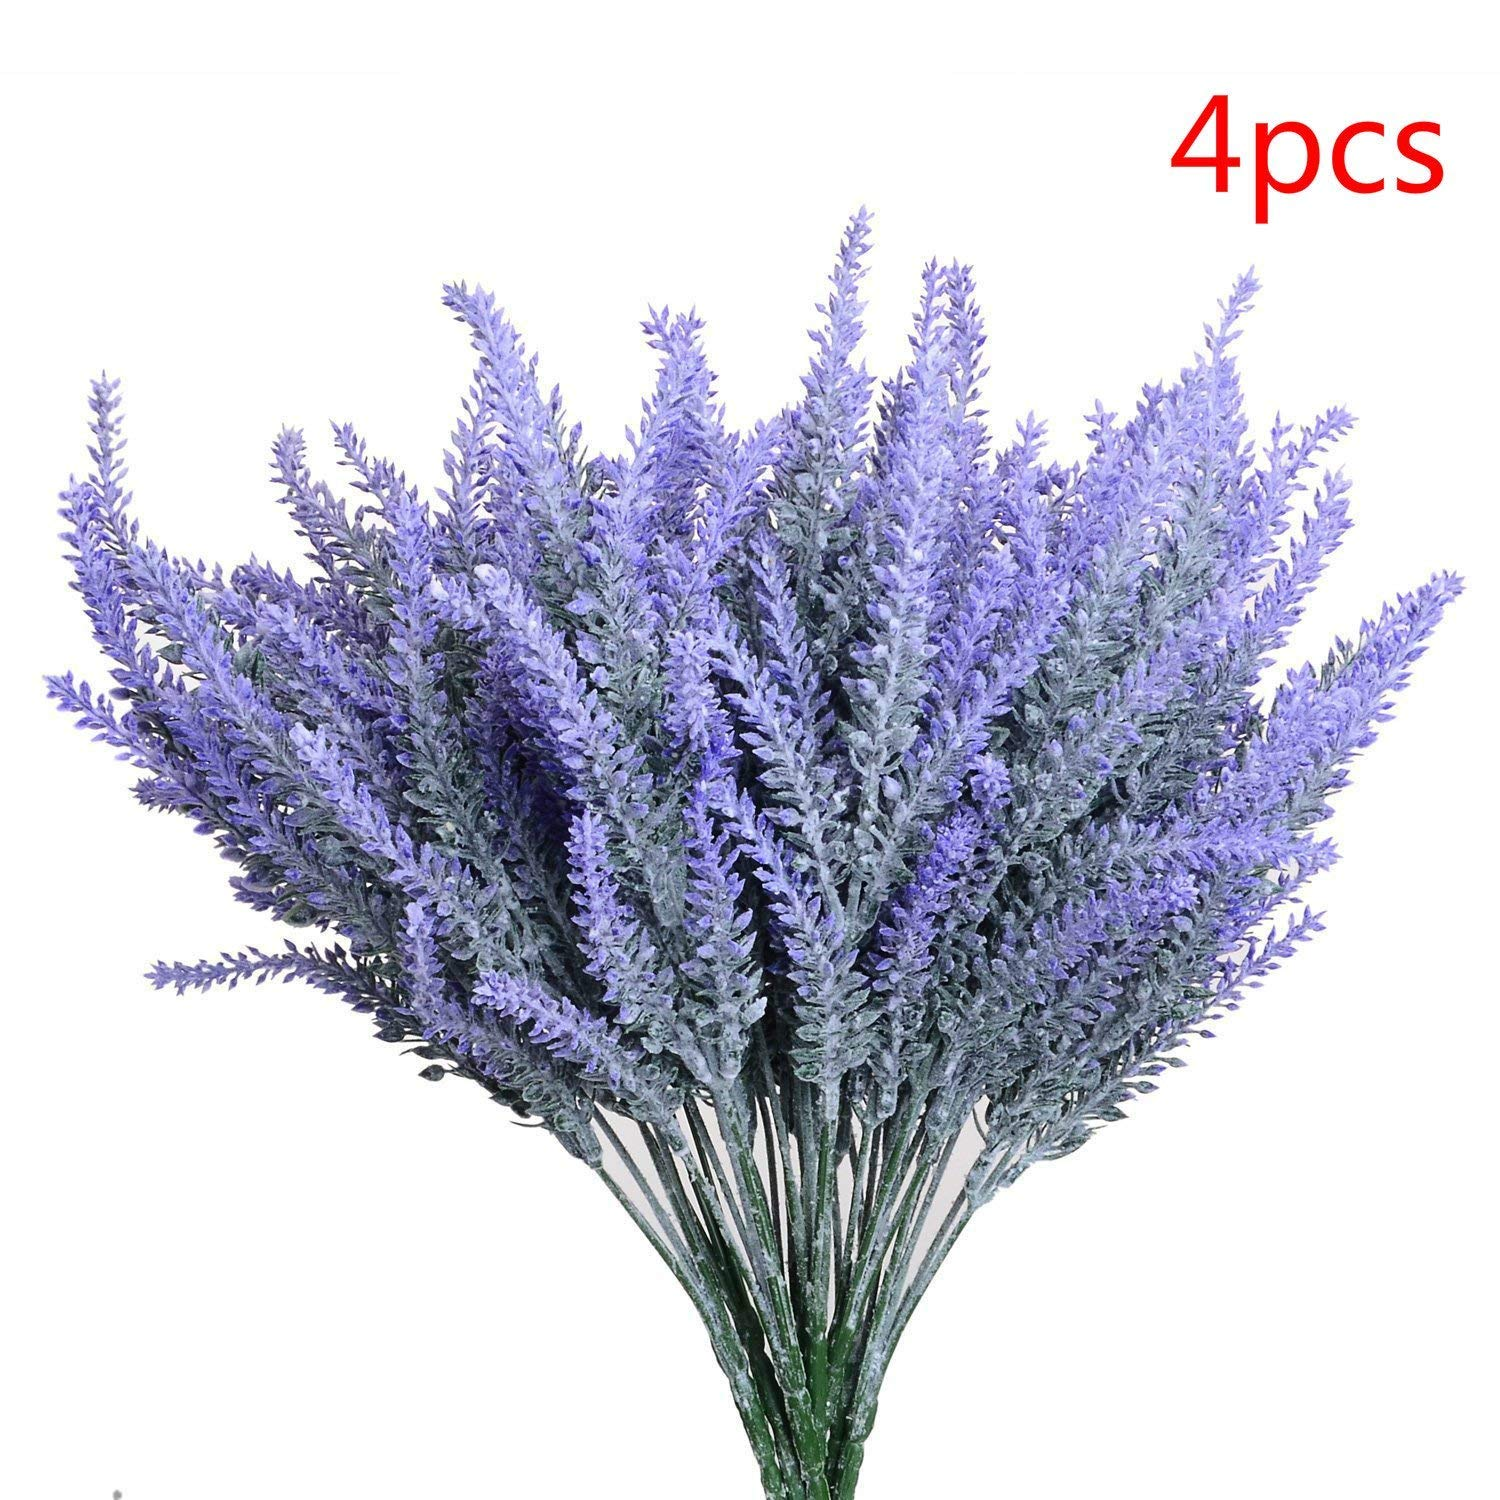 AngleLife Artificial Lavender Flowers, Lavender Bouquet in Purple Artificial Plant for Home DIY Decor, Wedding, Garden, Office Decor, 4 Bundles